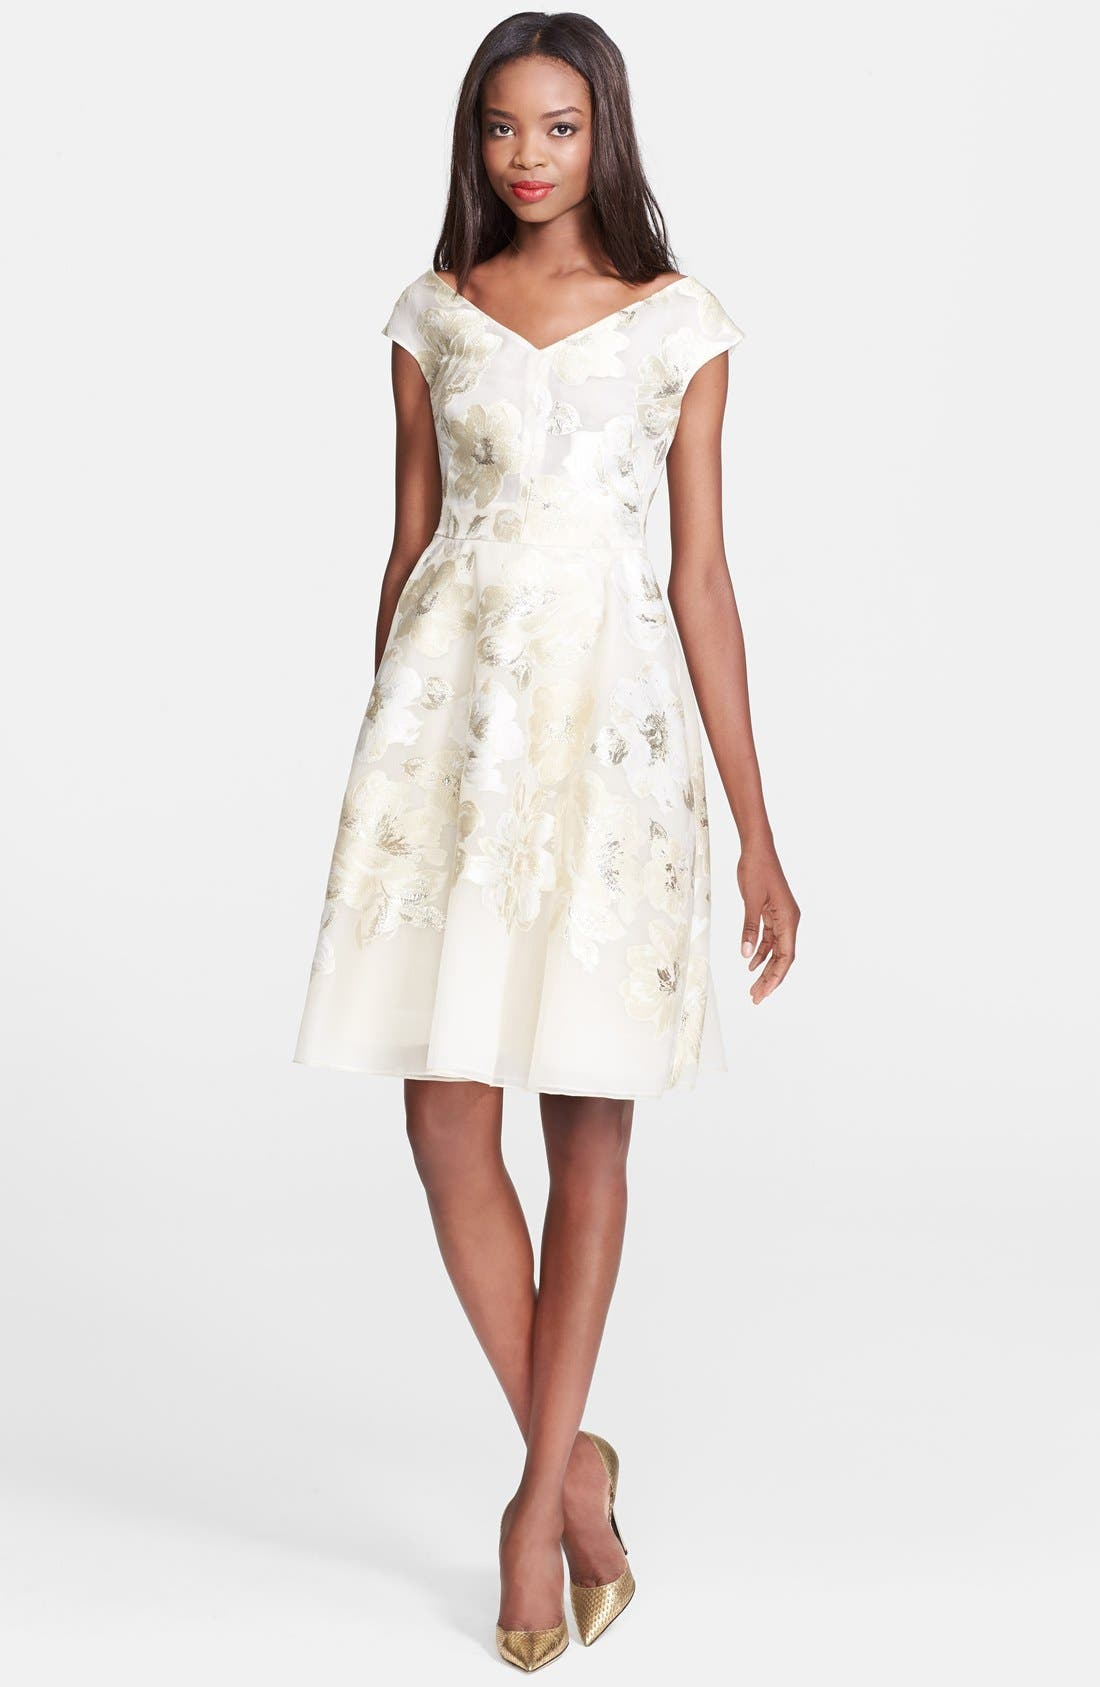 Main Image - Lela Rose Gold Leaf Fil Coupe Floral Dress